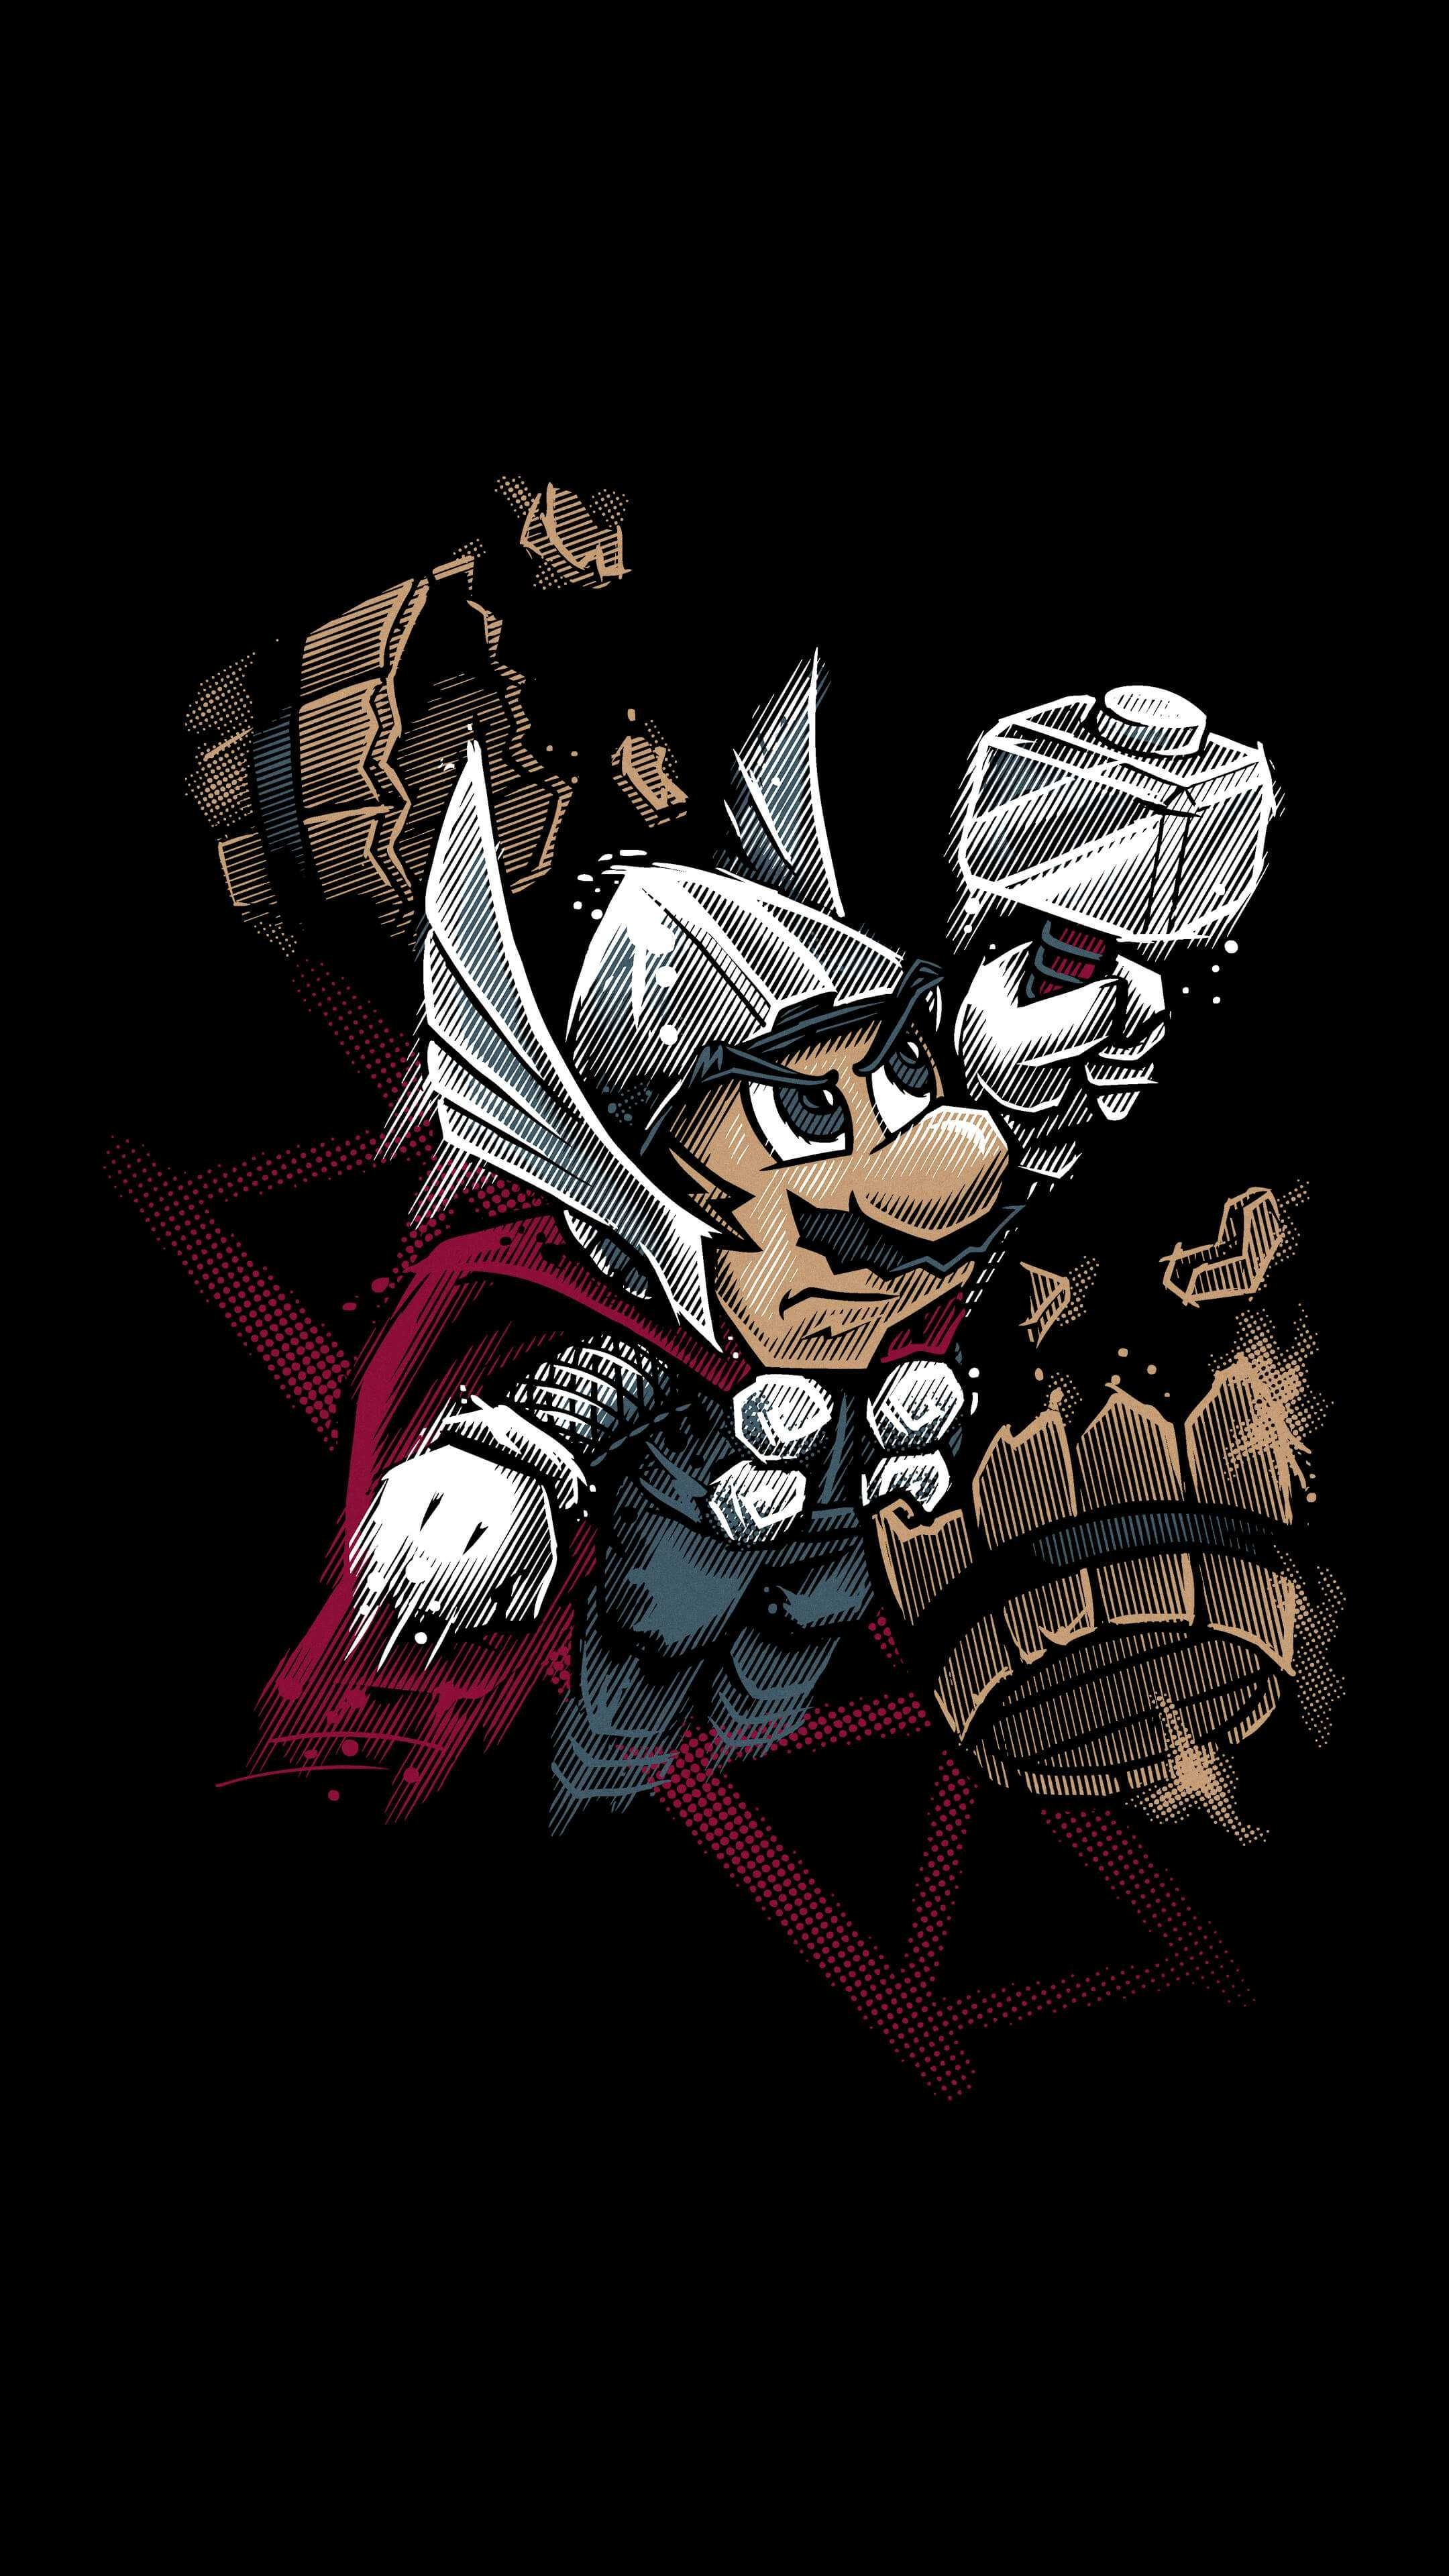 Super Mario Thor Iphone Wallpaper   Data Src Super - Mario Wallpaper Iphone Xs Max - HD Wallpaper